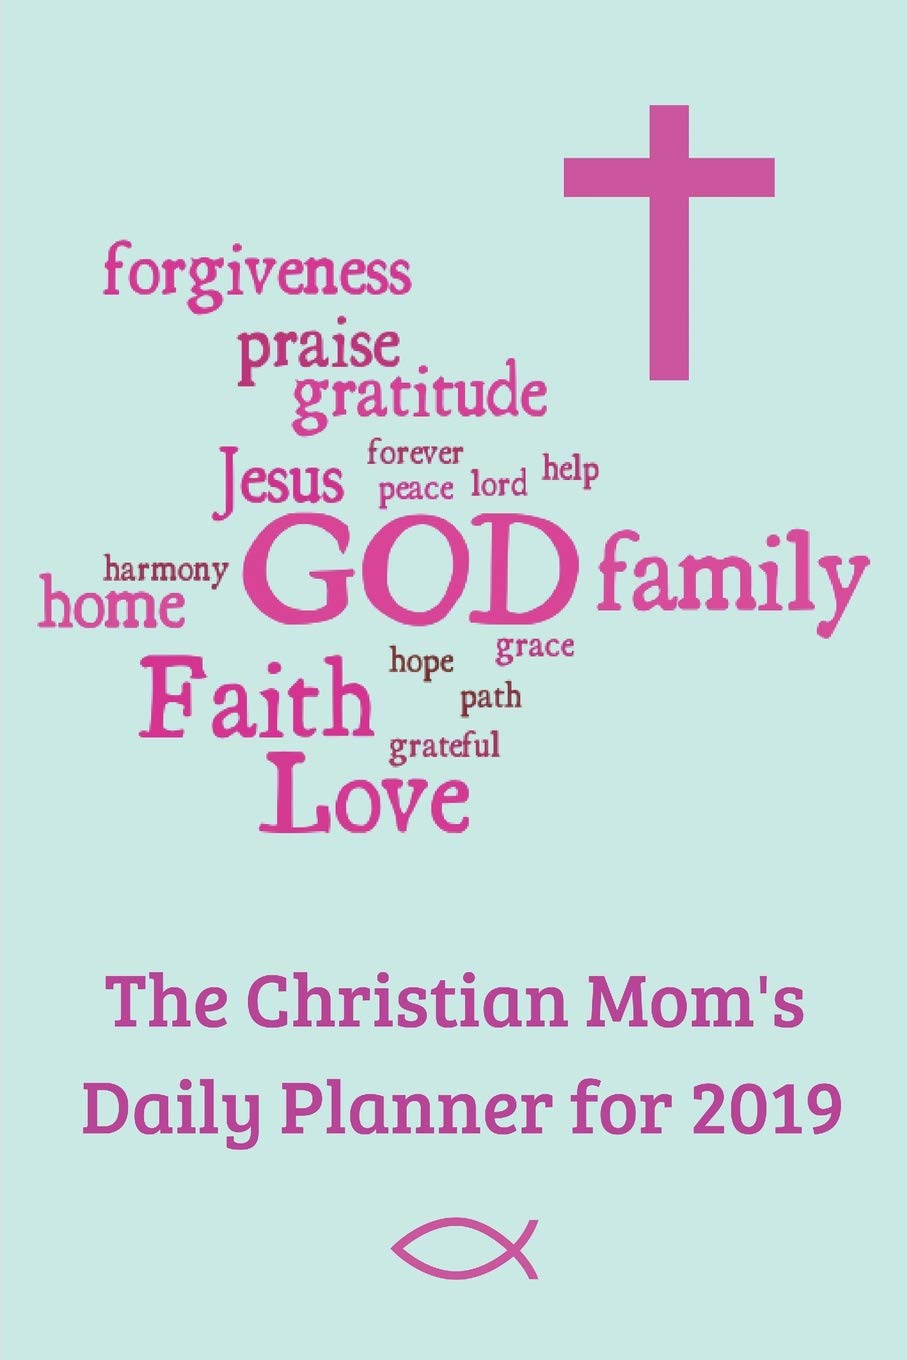 The Christian Moms Daily Planner 2019: A Daily Devotional ...